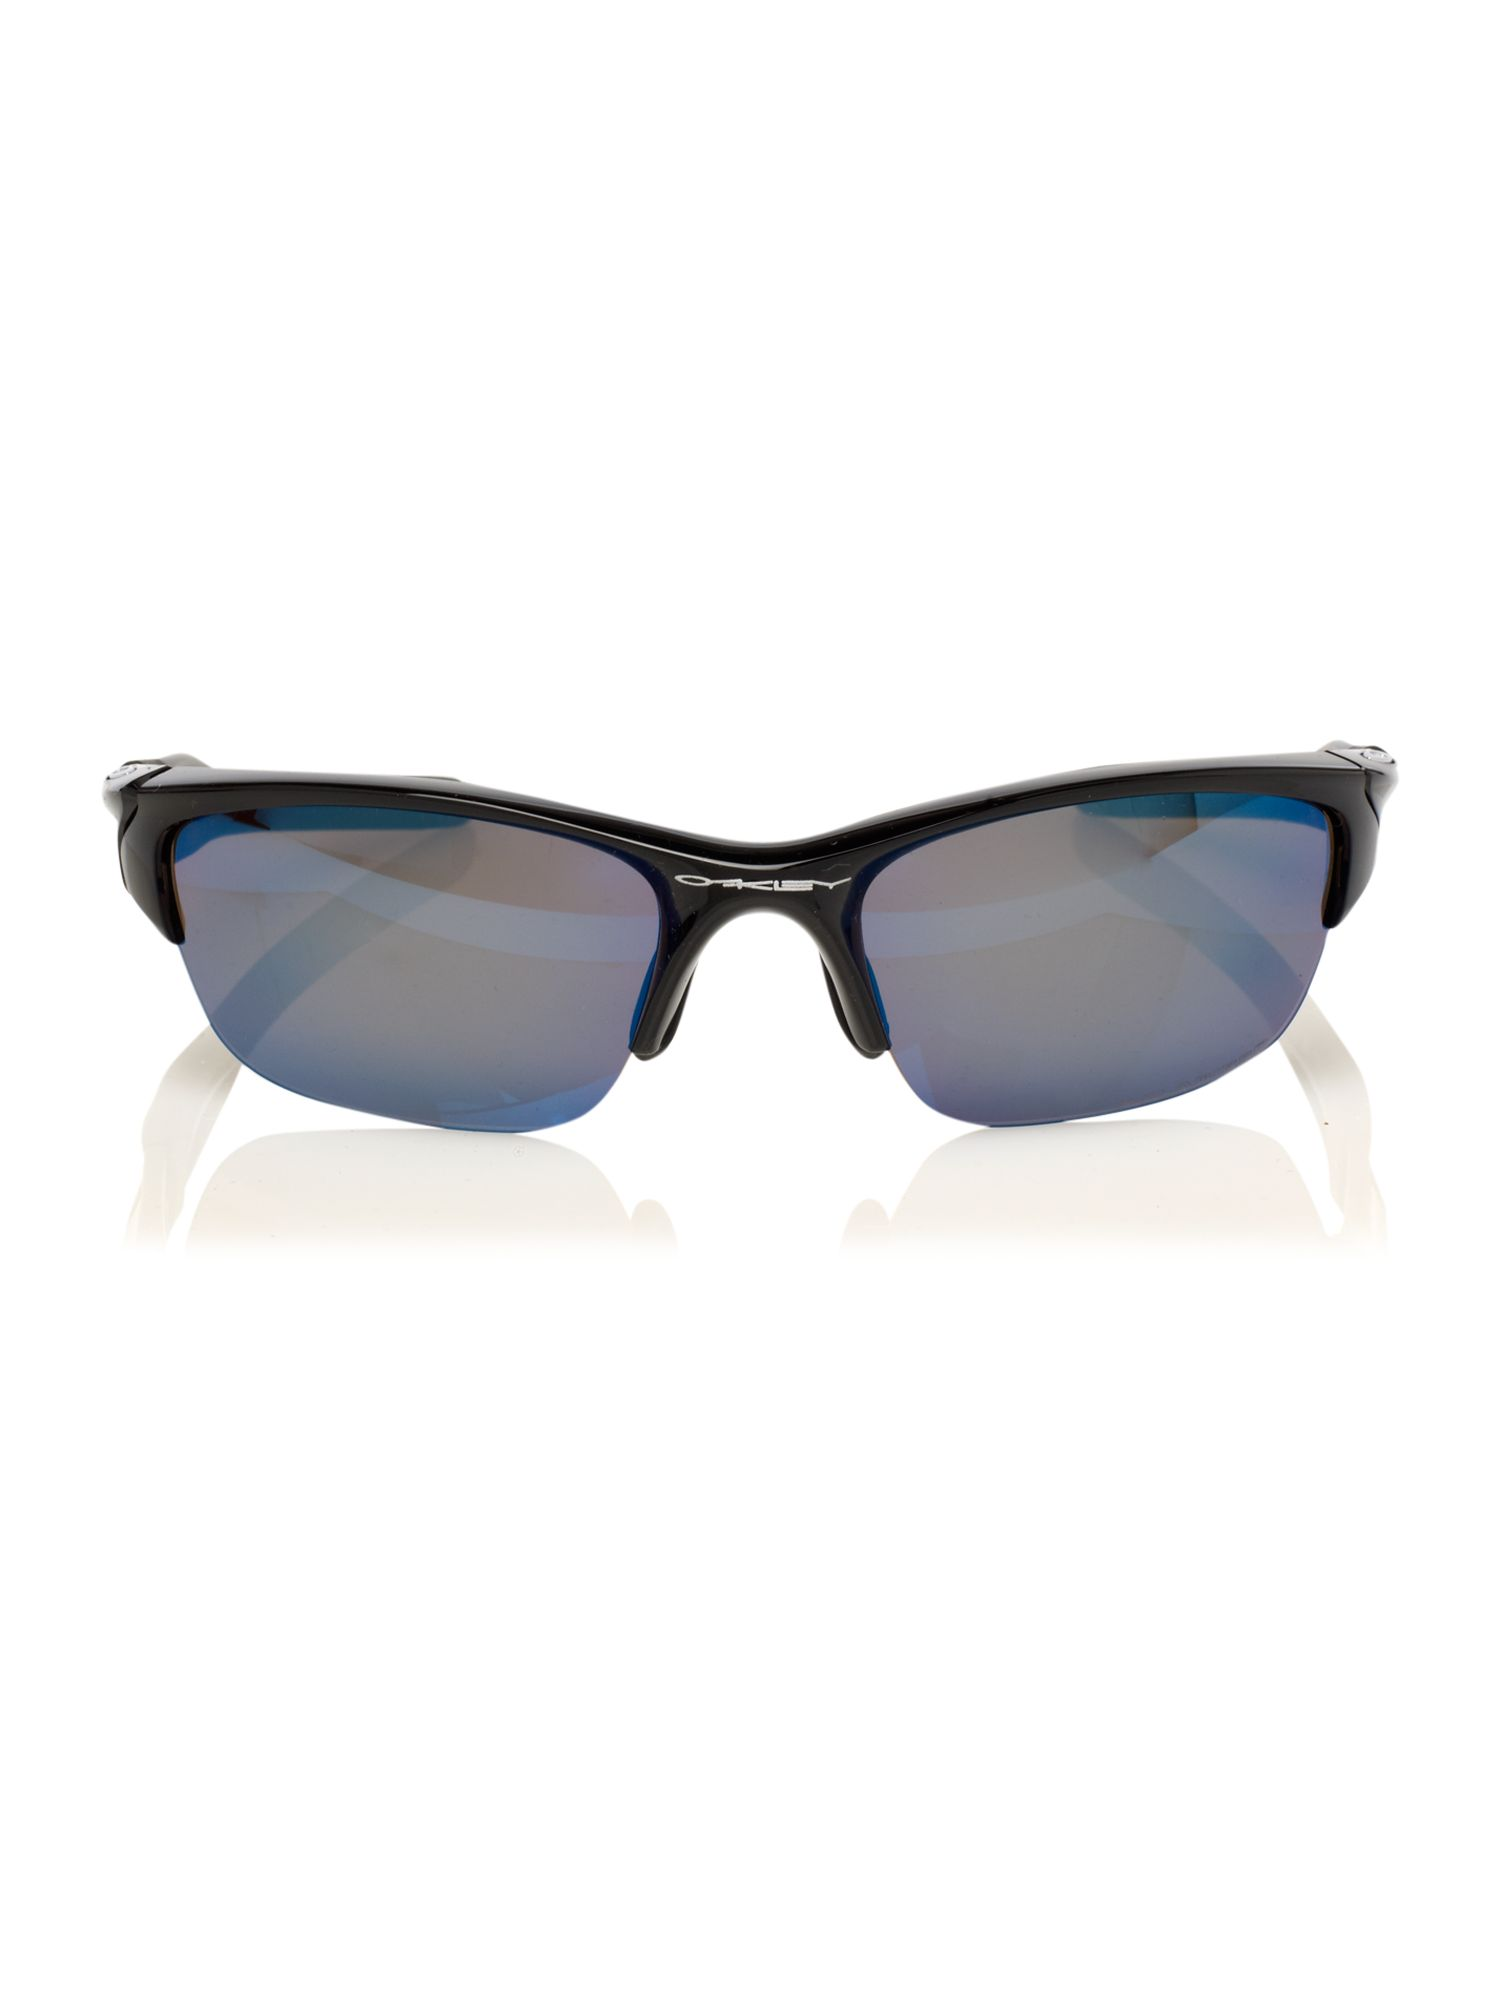 Mens OO9144 Half Jacket 2.0 Polar Sunglasses